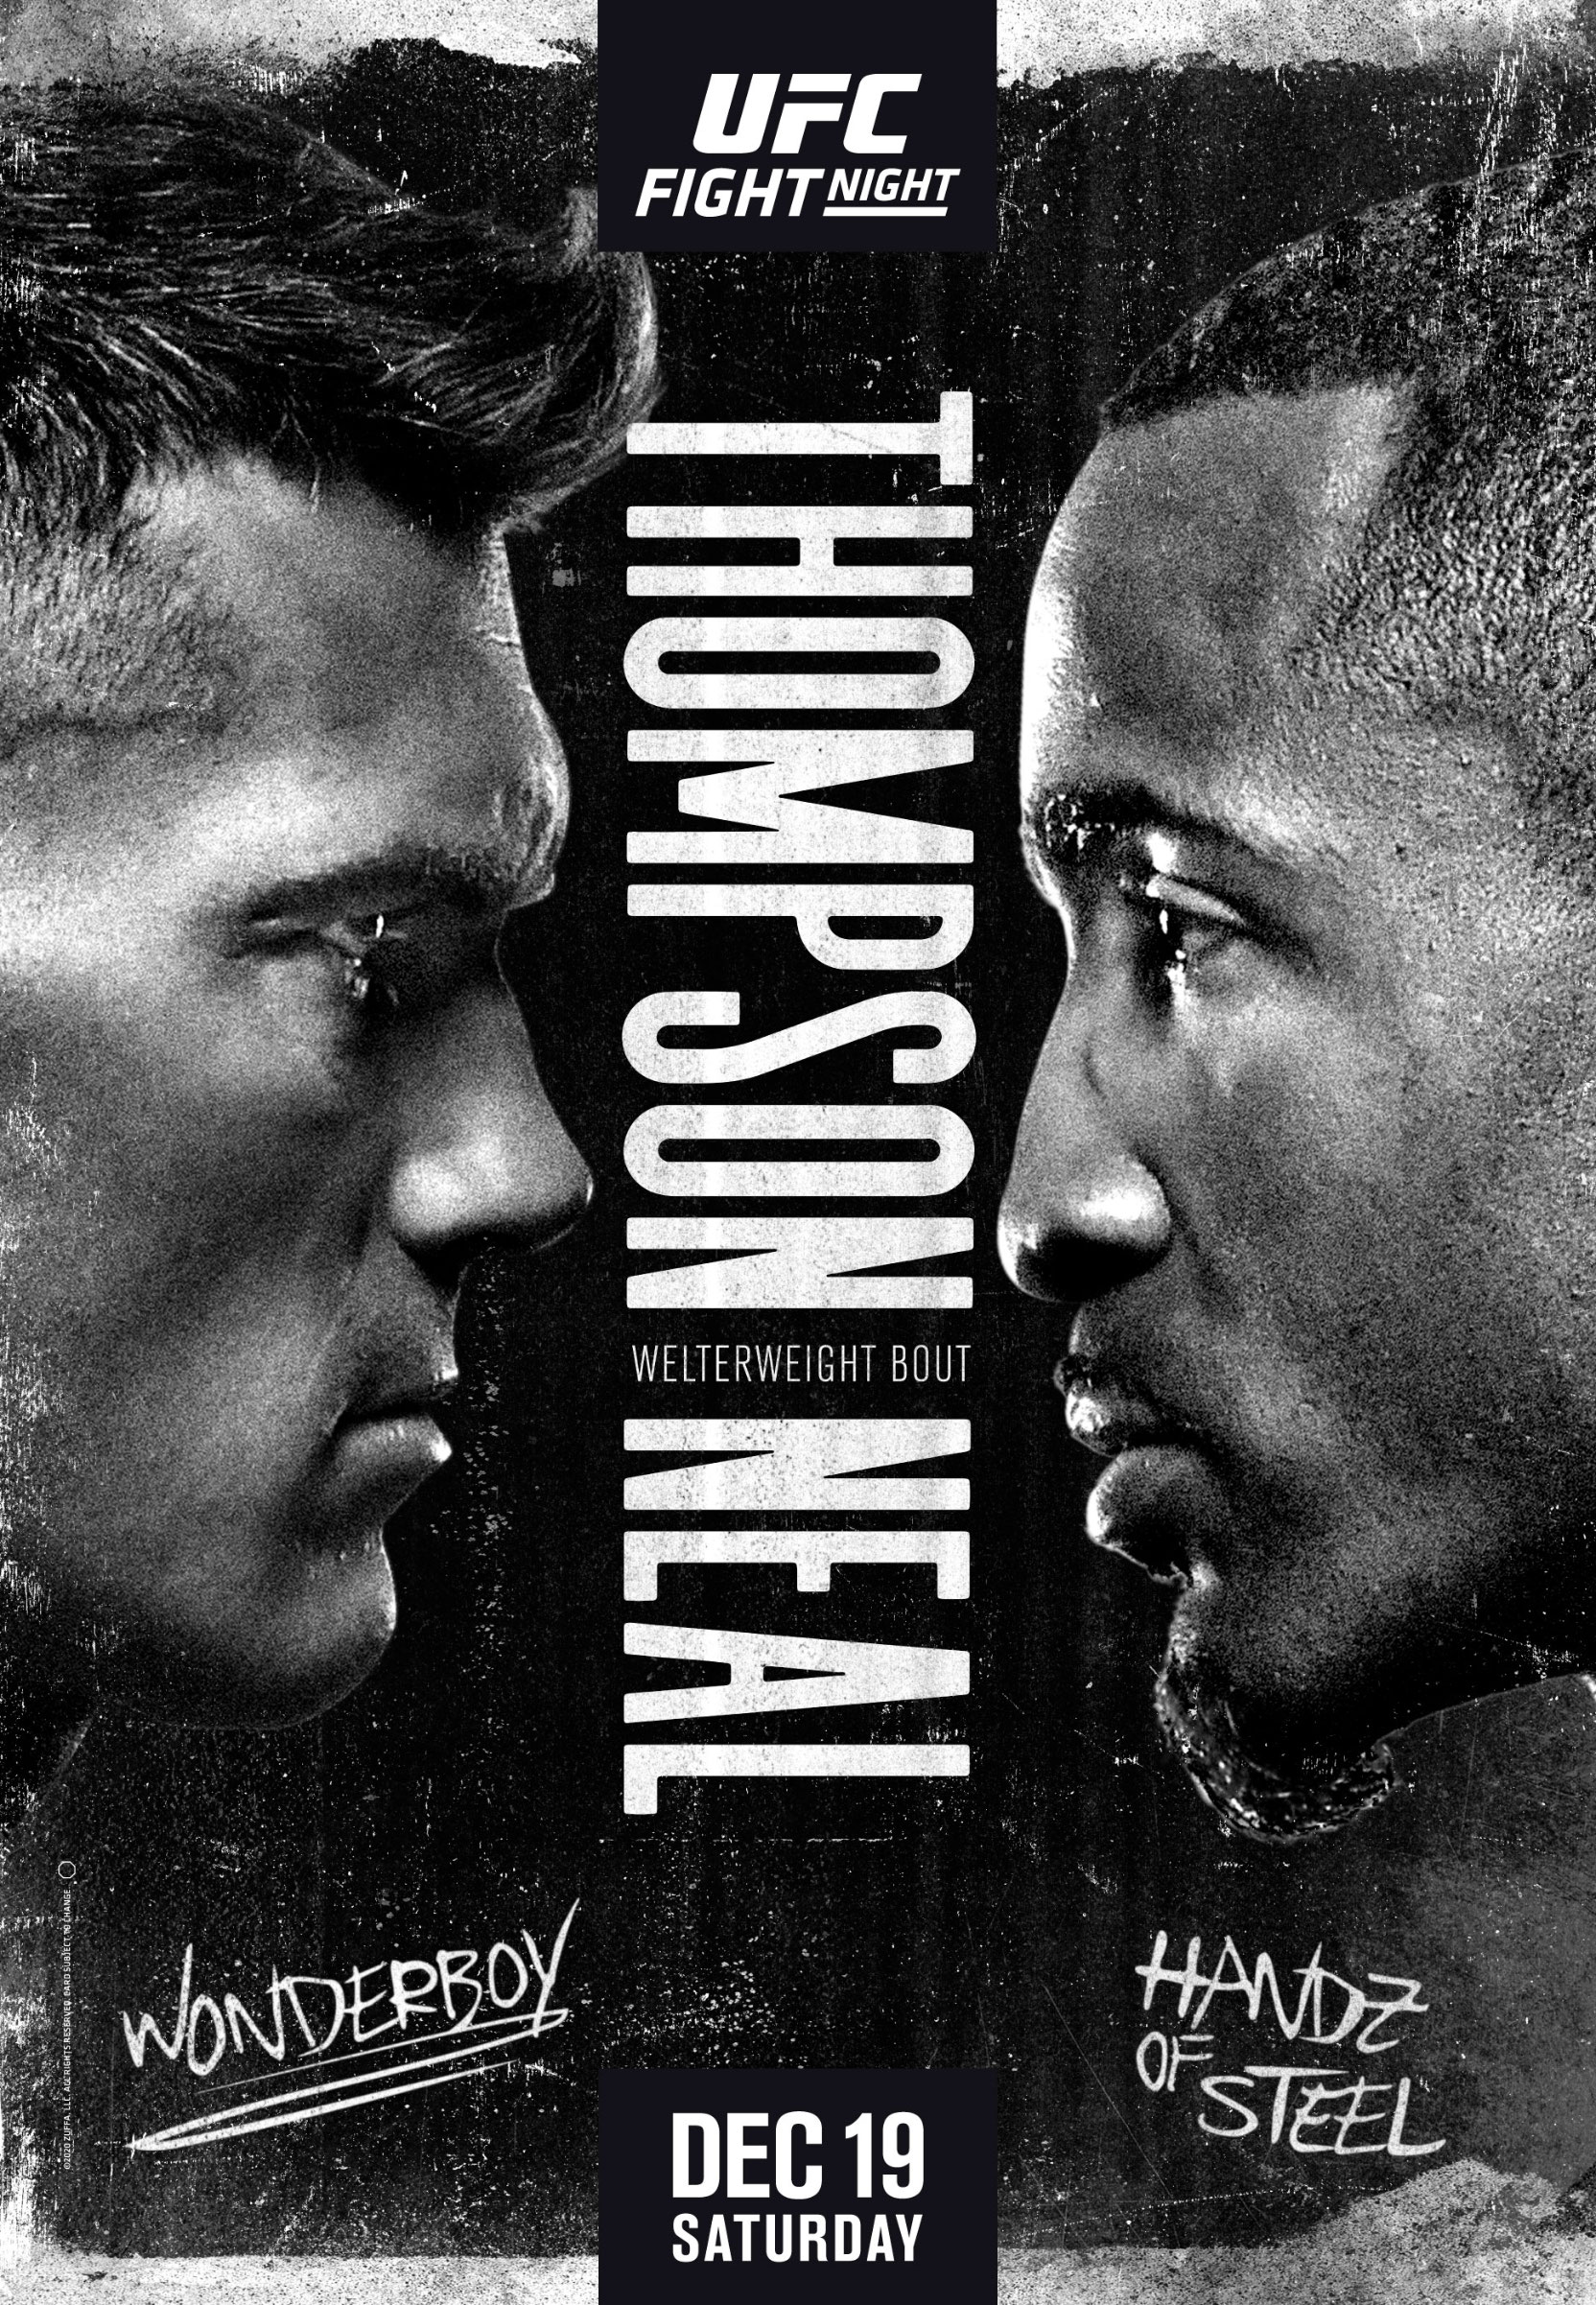 Thompson vs. Neal poster